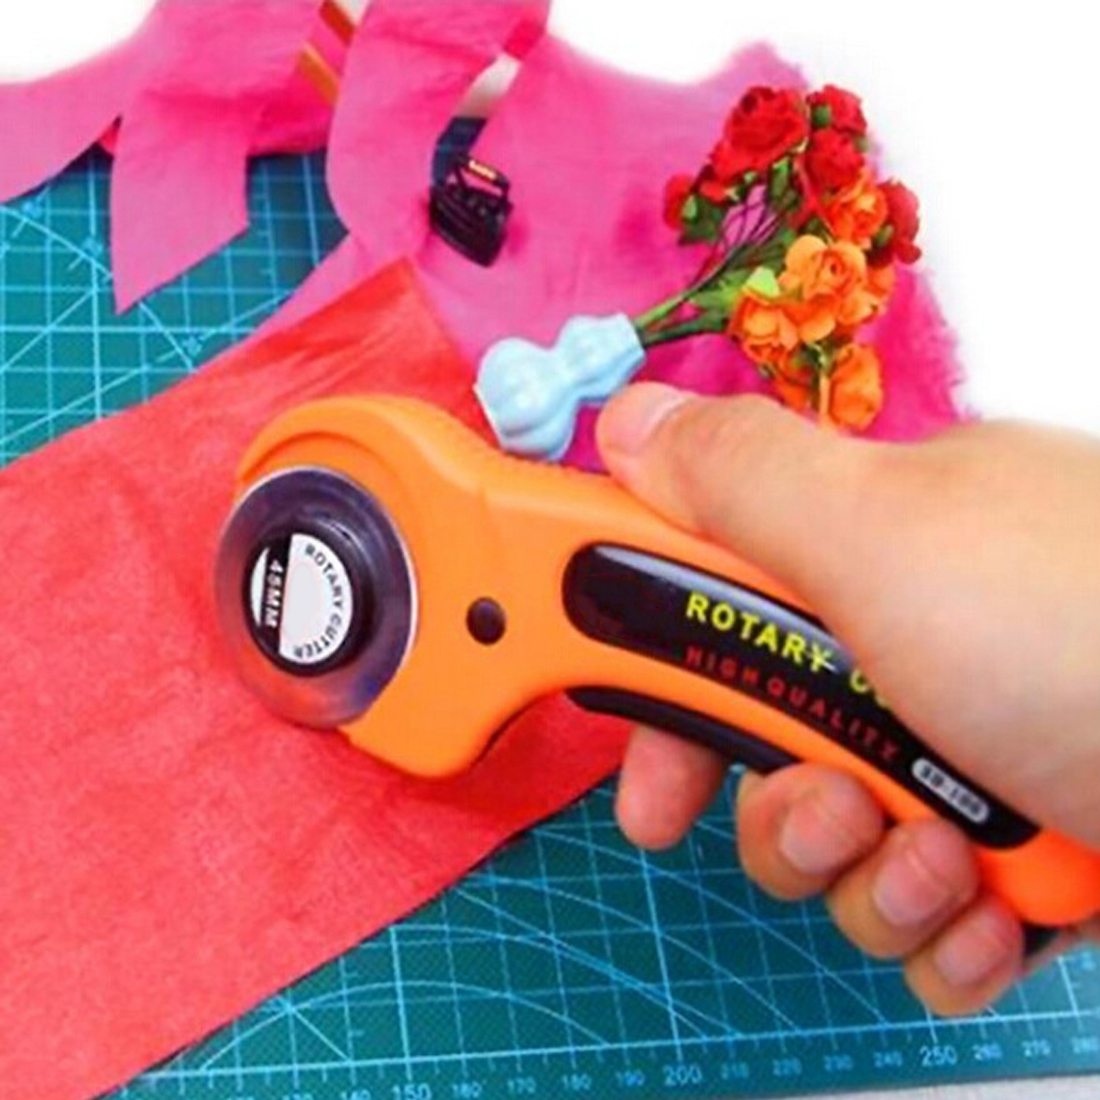 45mm Handle Rotary Cutter Cloth Cutting Blades Circular Patchwork Leather Sewing Tool Quilting Fabric Cutting Craft Tool